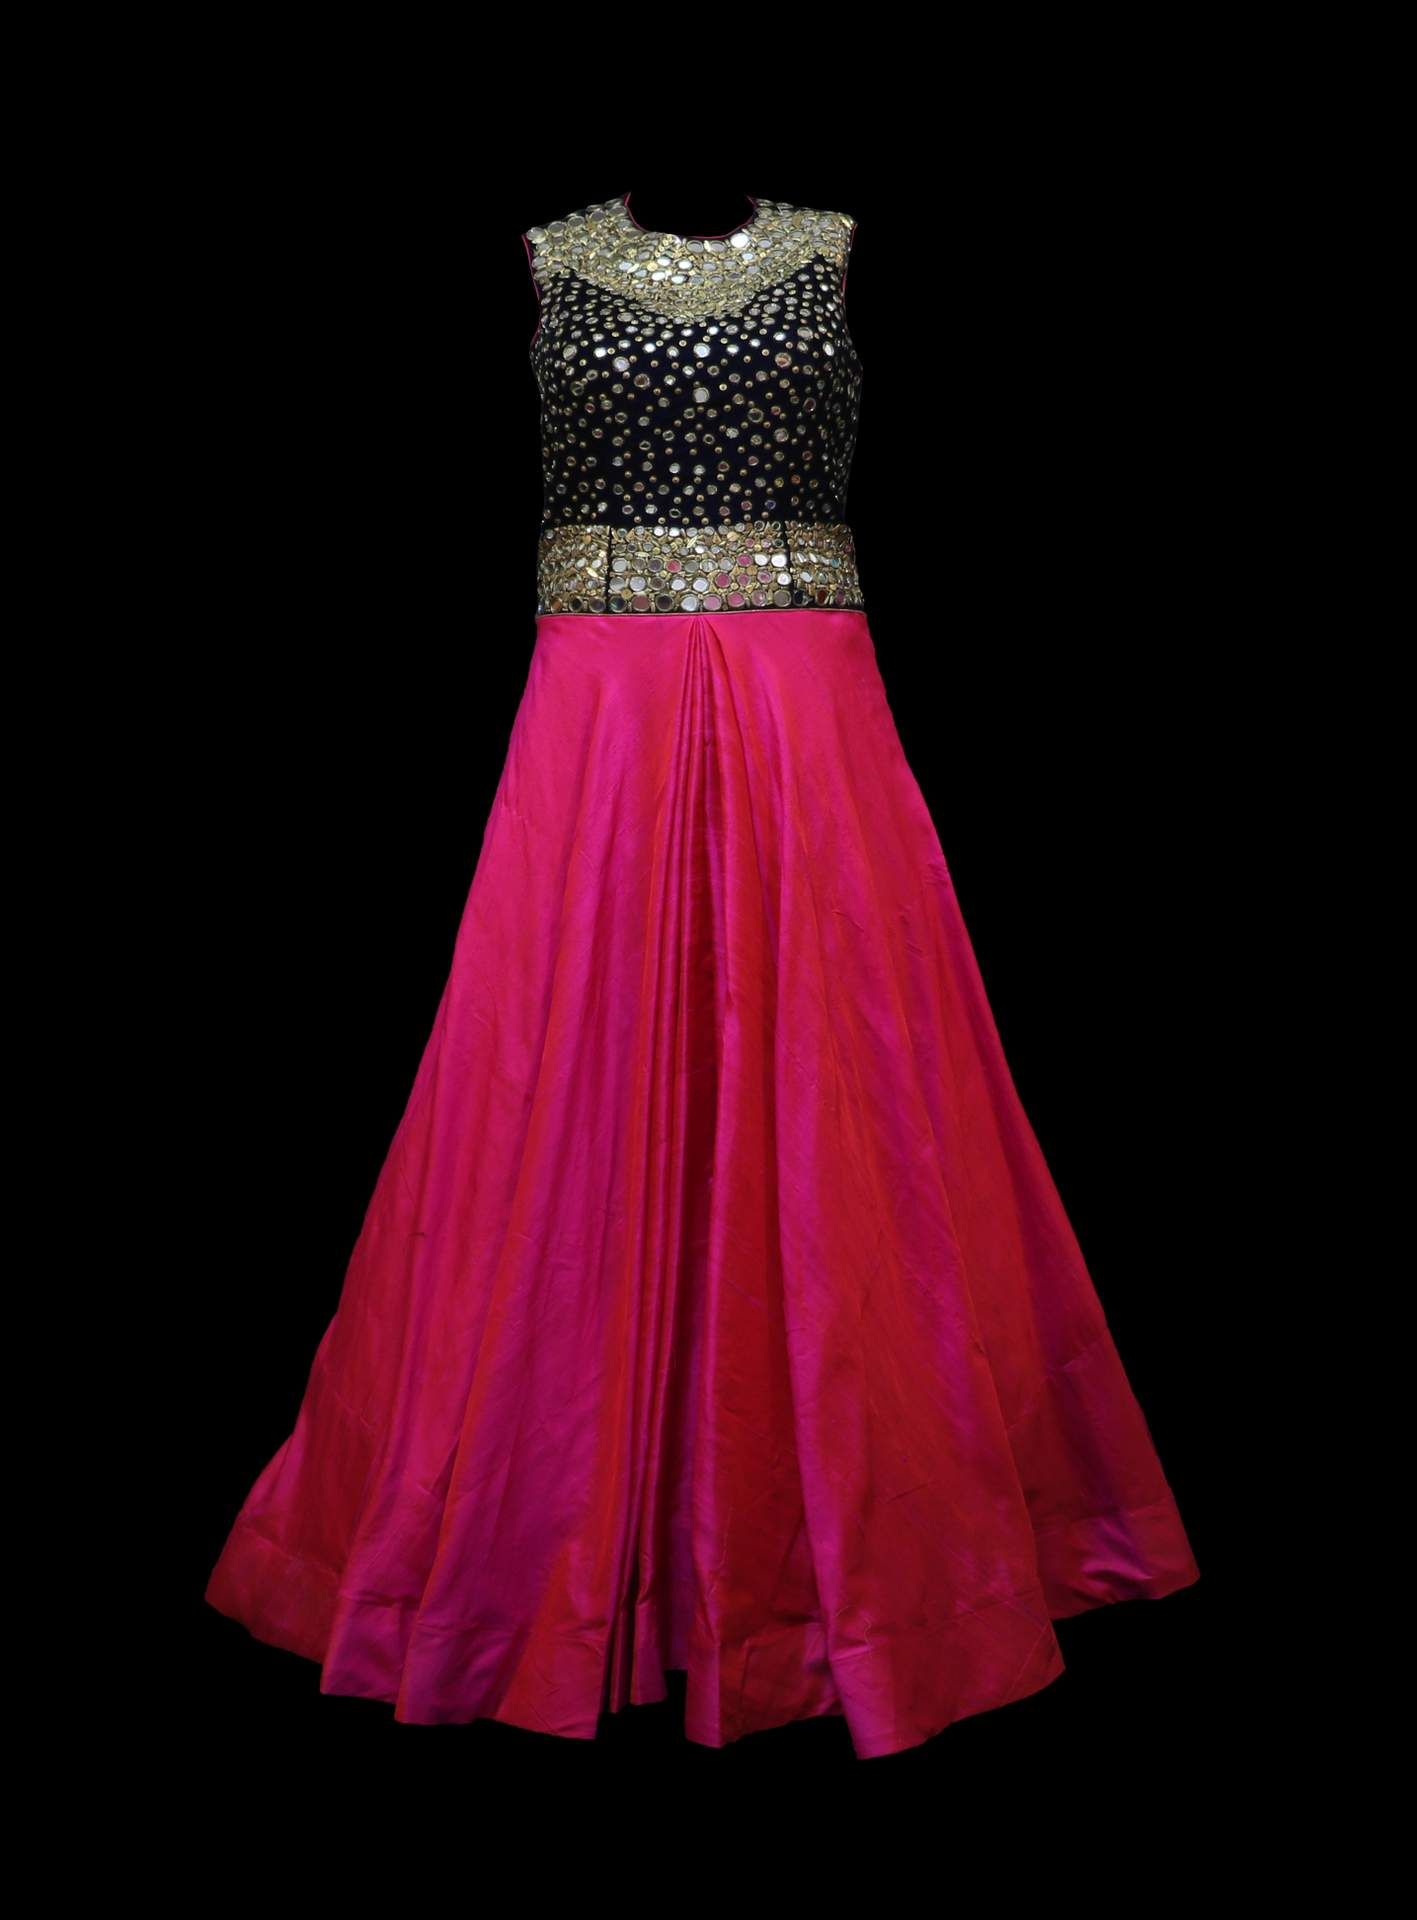 rent wedding dresses renting wedding dresses wedding dress u party wear clothes on rent in india